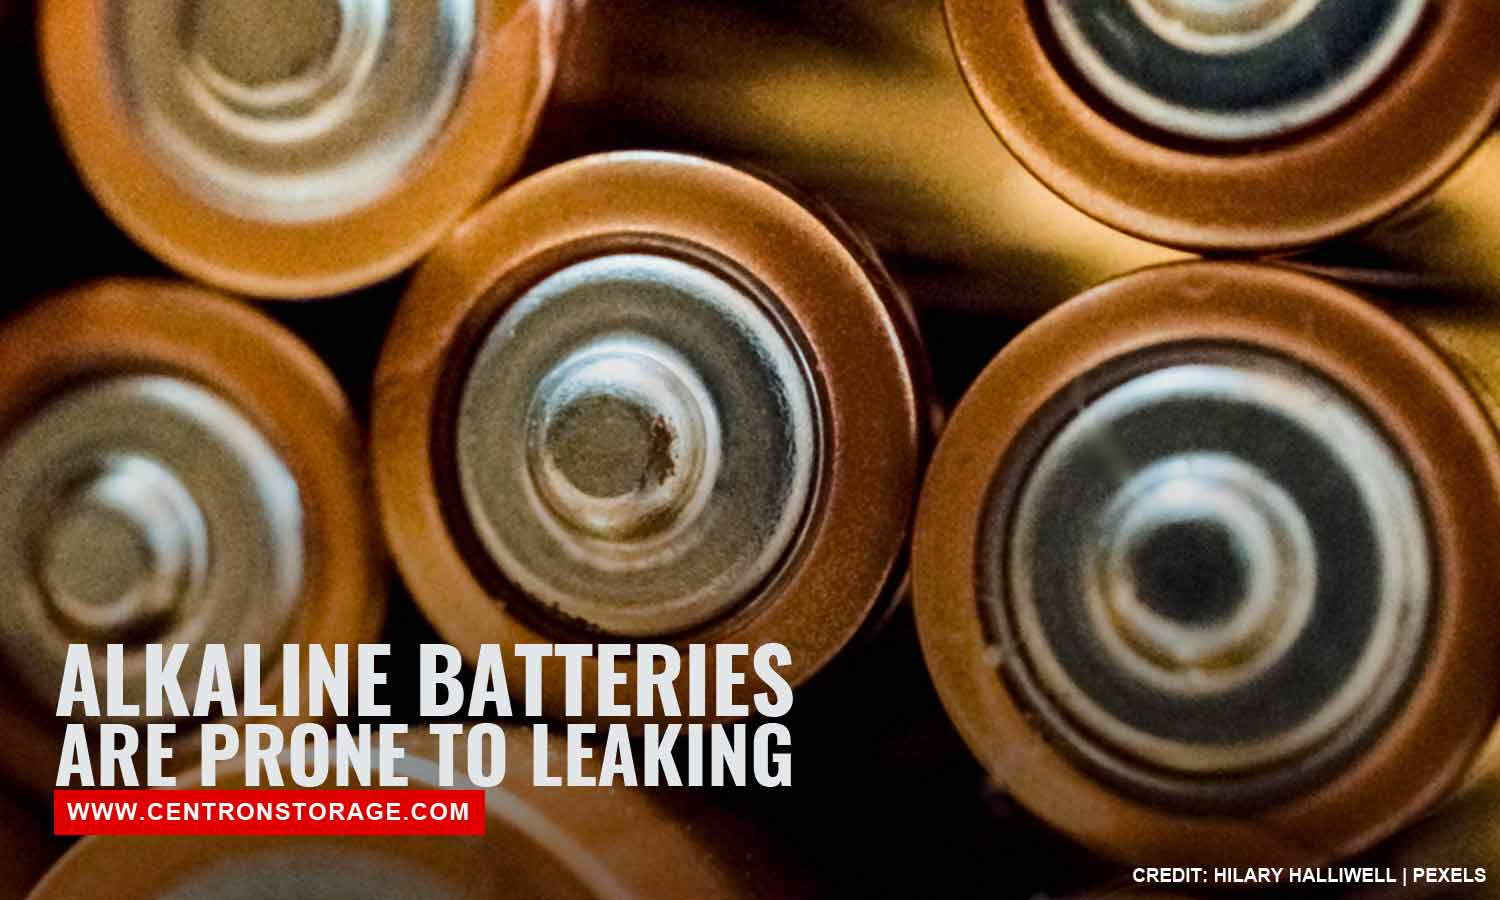 Alkaline batteries are prone to leaking